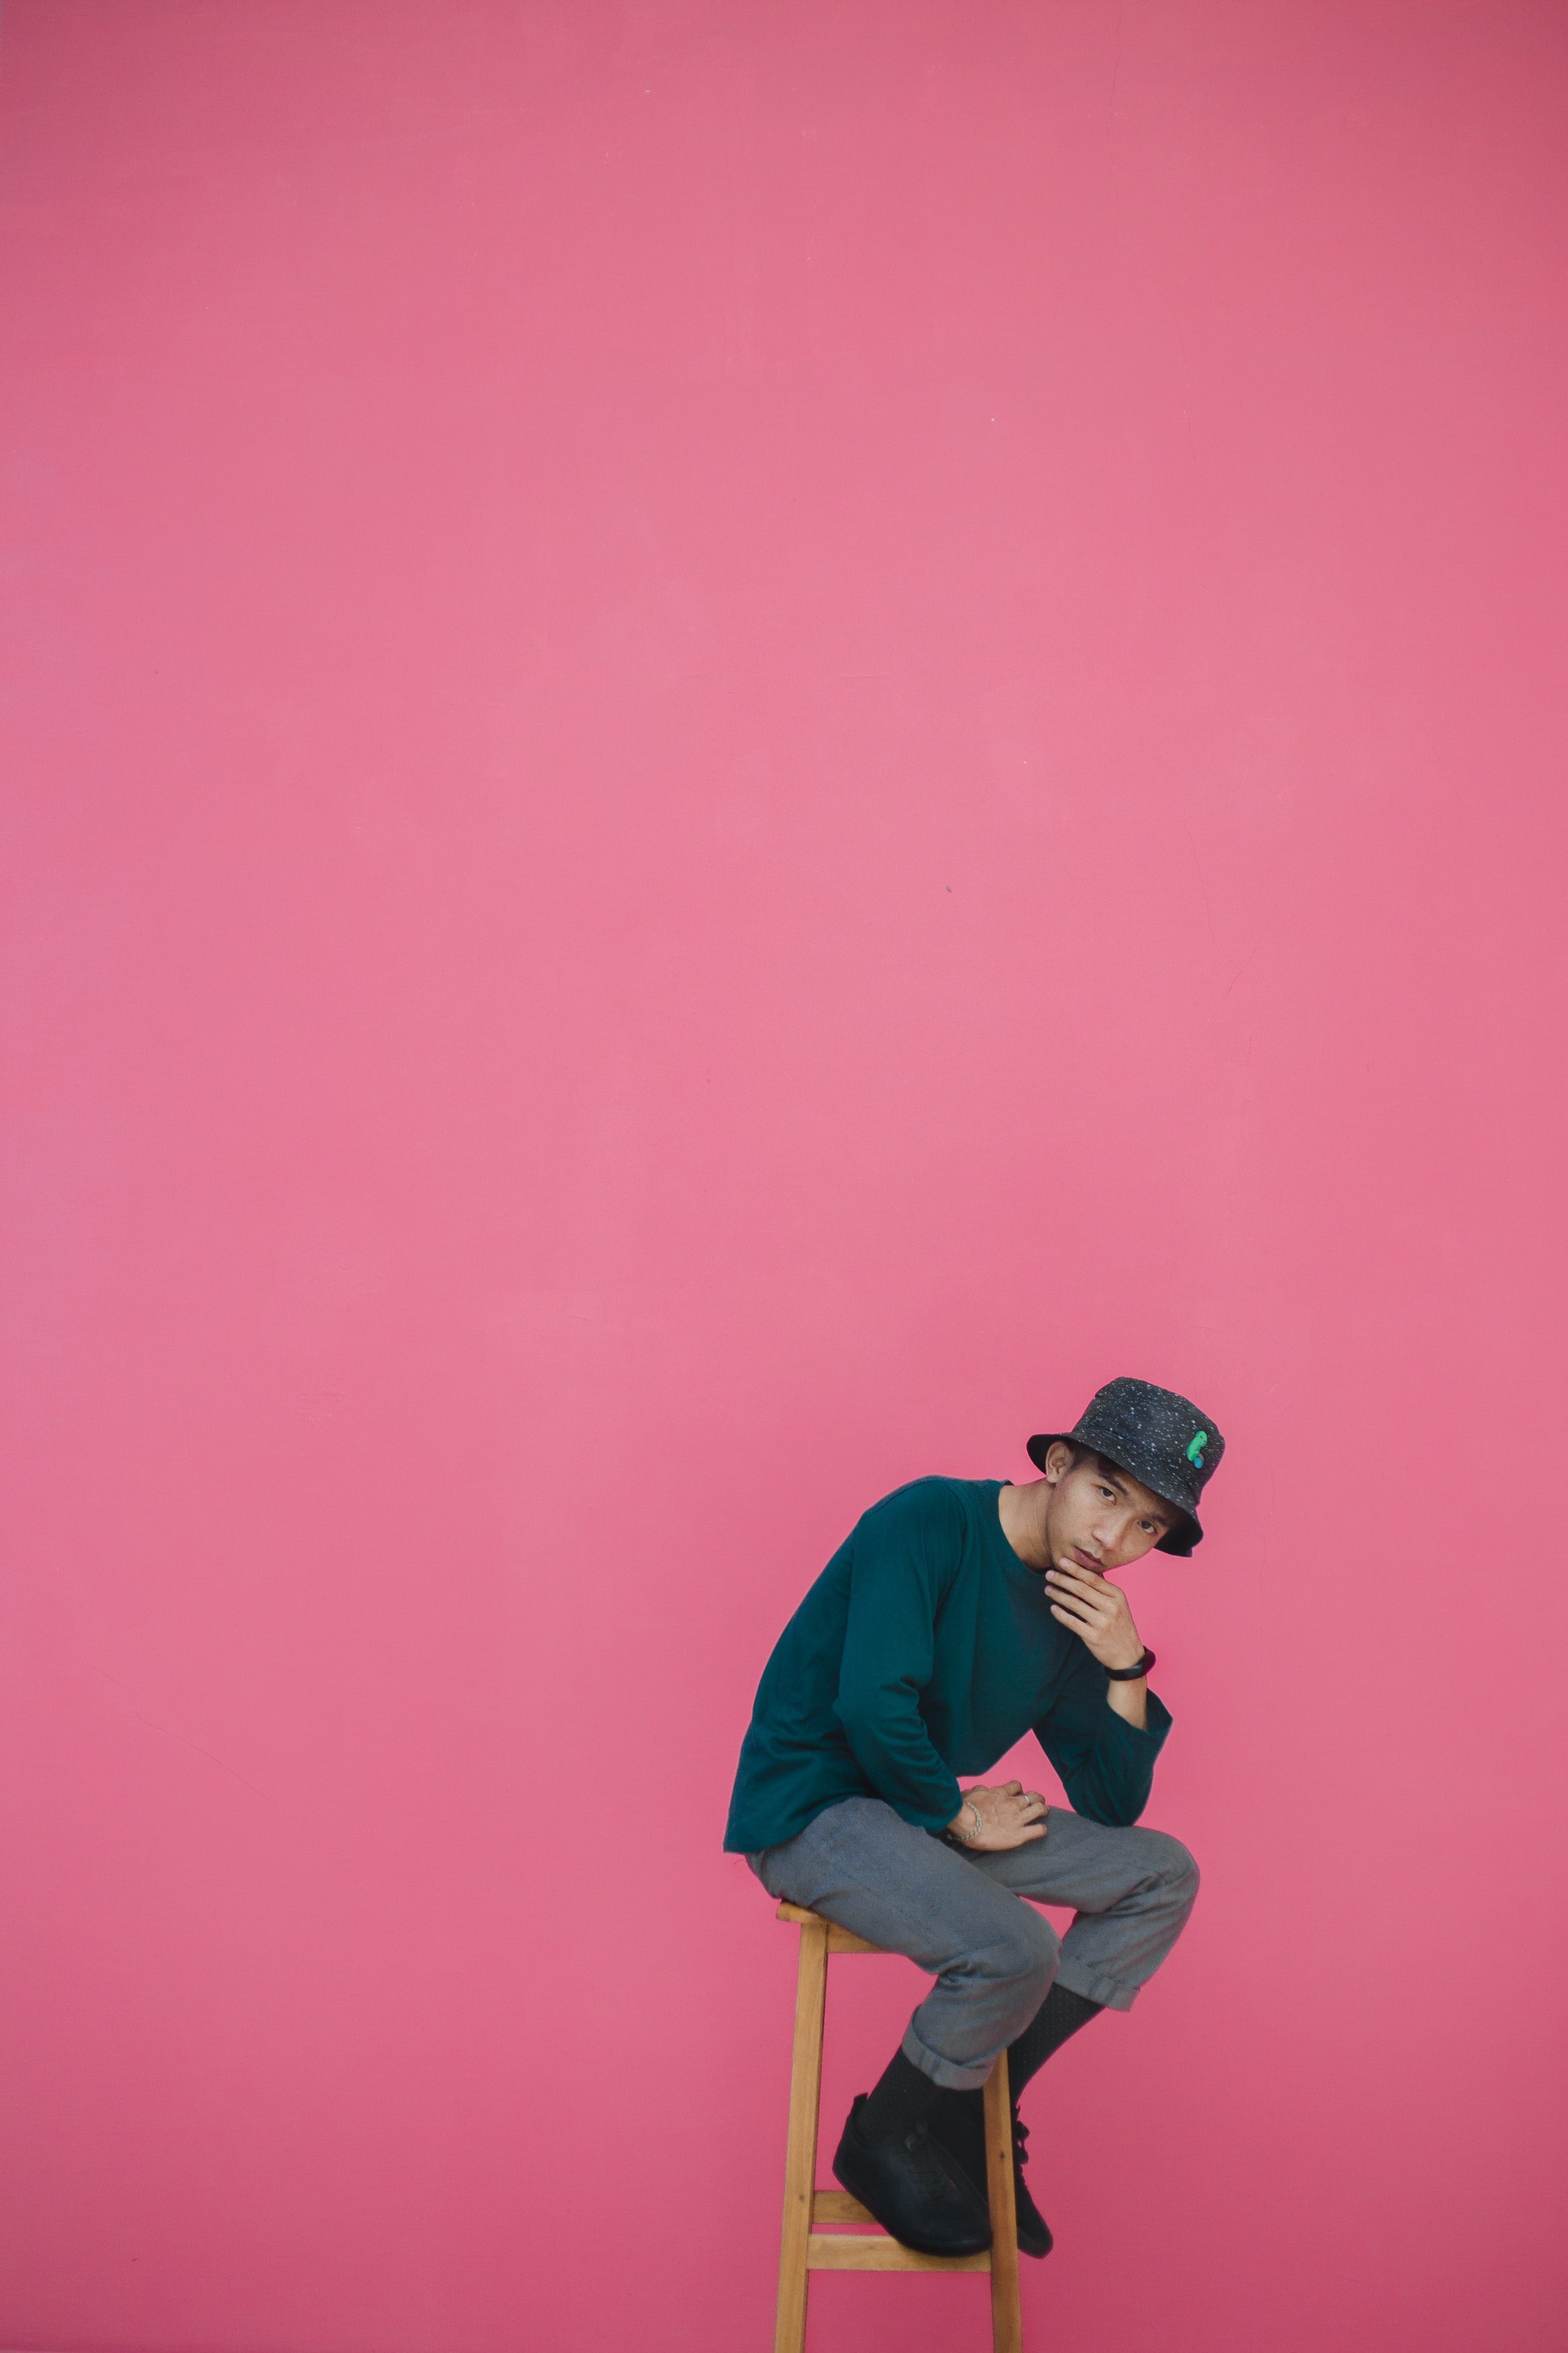 Astonishing Man Sitting On Wooden Stool Against Pink Background Free Ocoug Best Dining Table And Chair Ideas Images Ocougorg